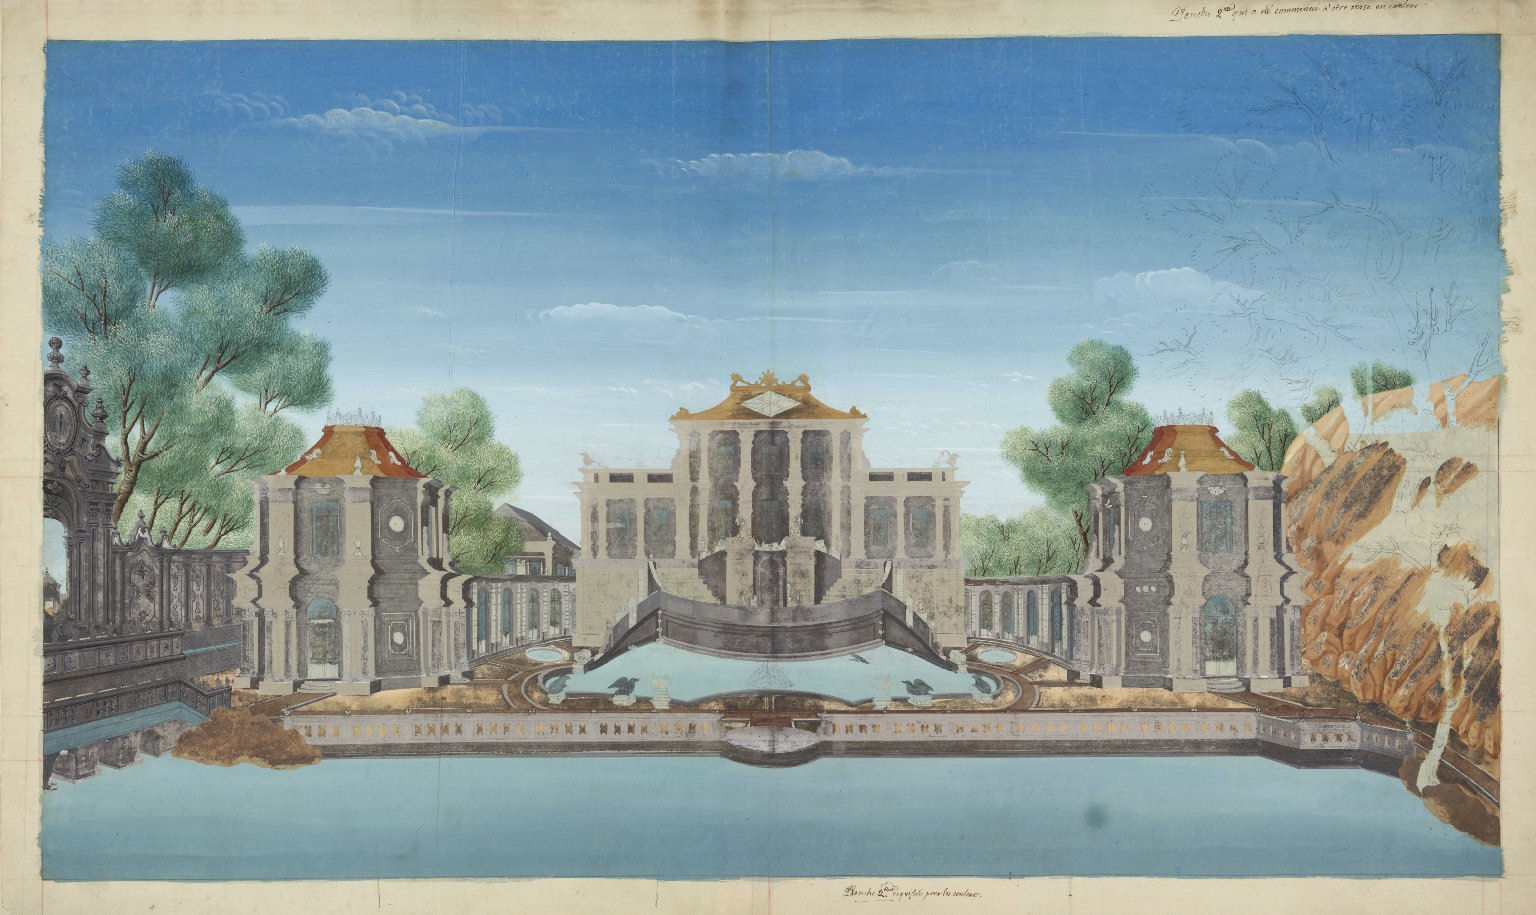 Views of the European Palaces in the Garden of Perfect Brightness